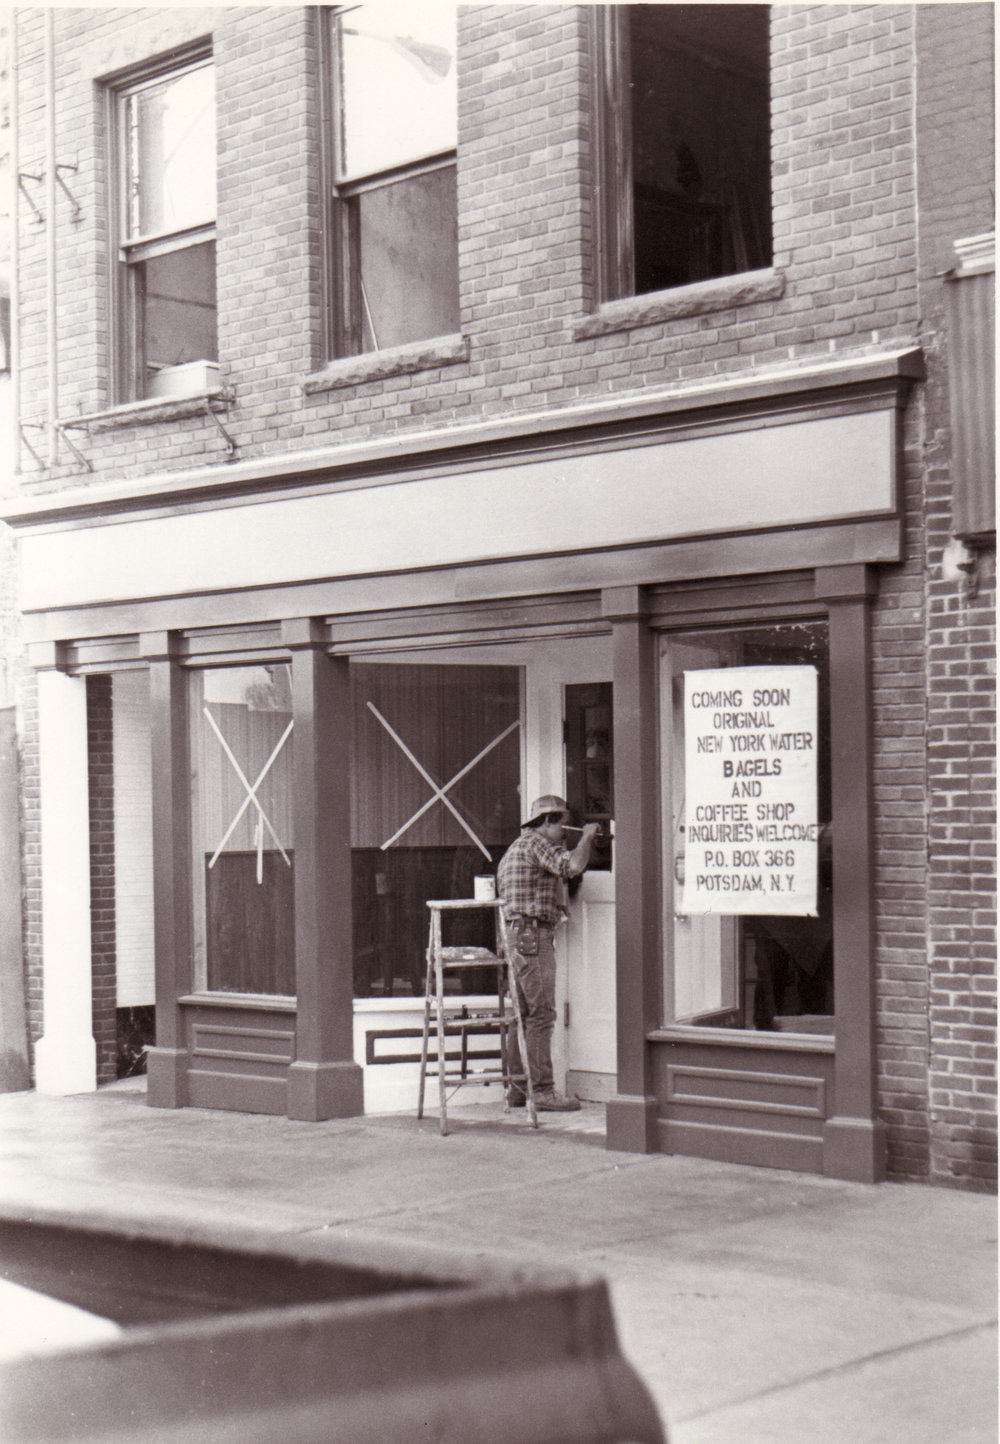 "Original Location in early 1982 ""Coming Soon Original New York Water Bagels and Coffee Shop"""